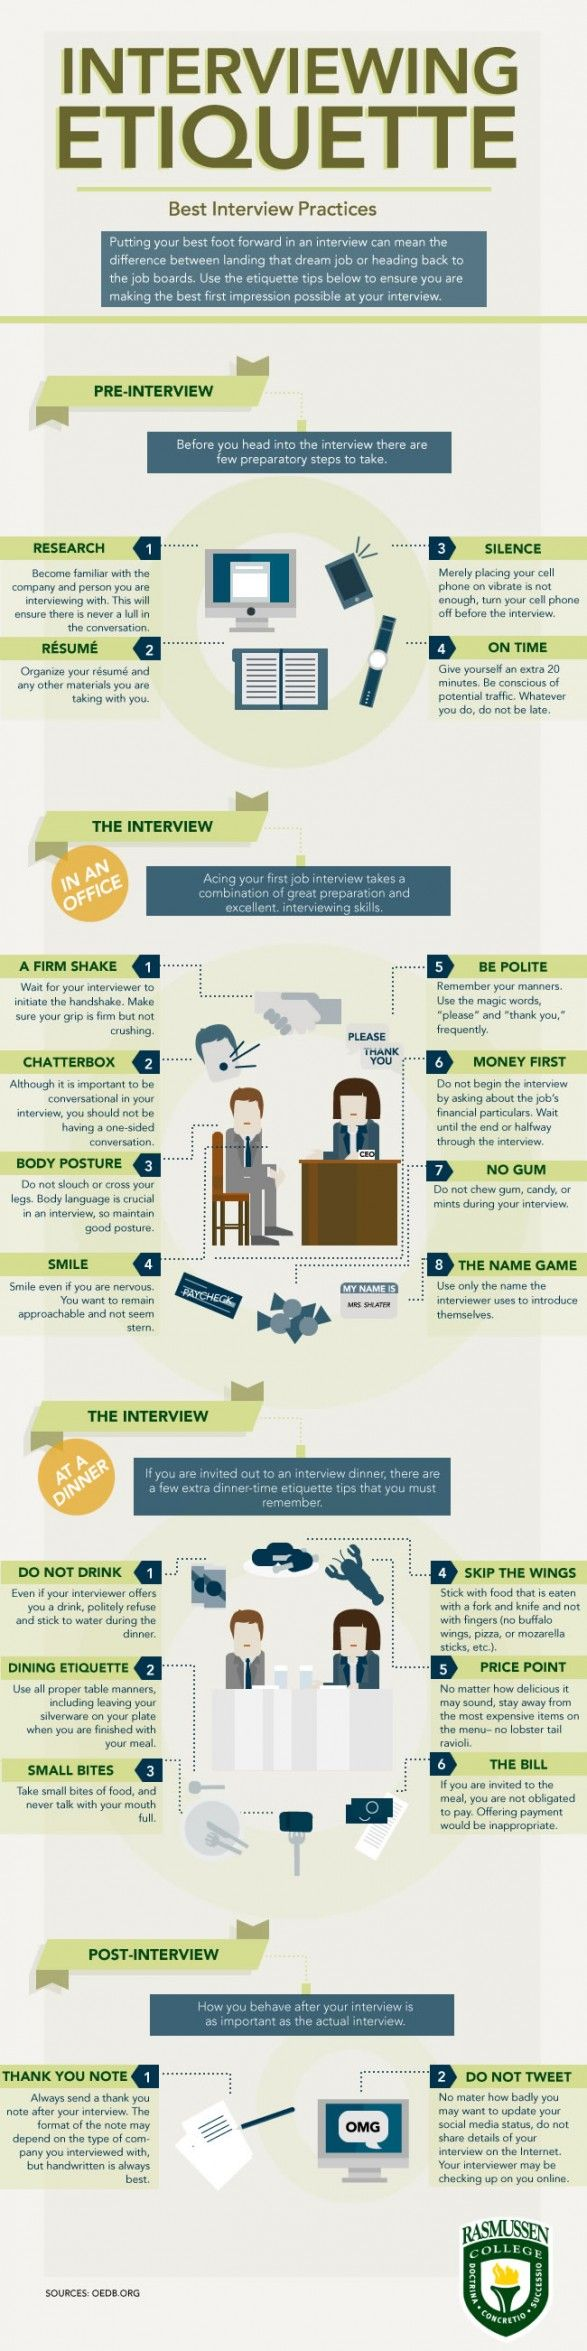 Interviewing Etiquette - great tips!